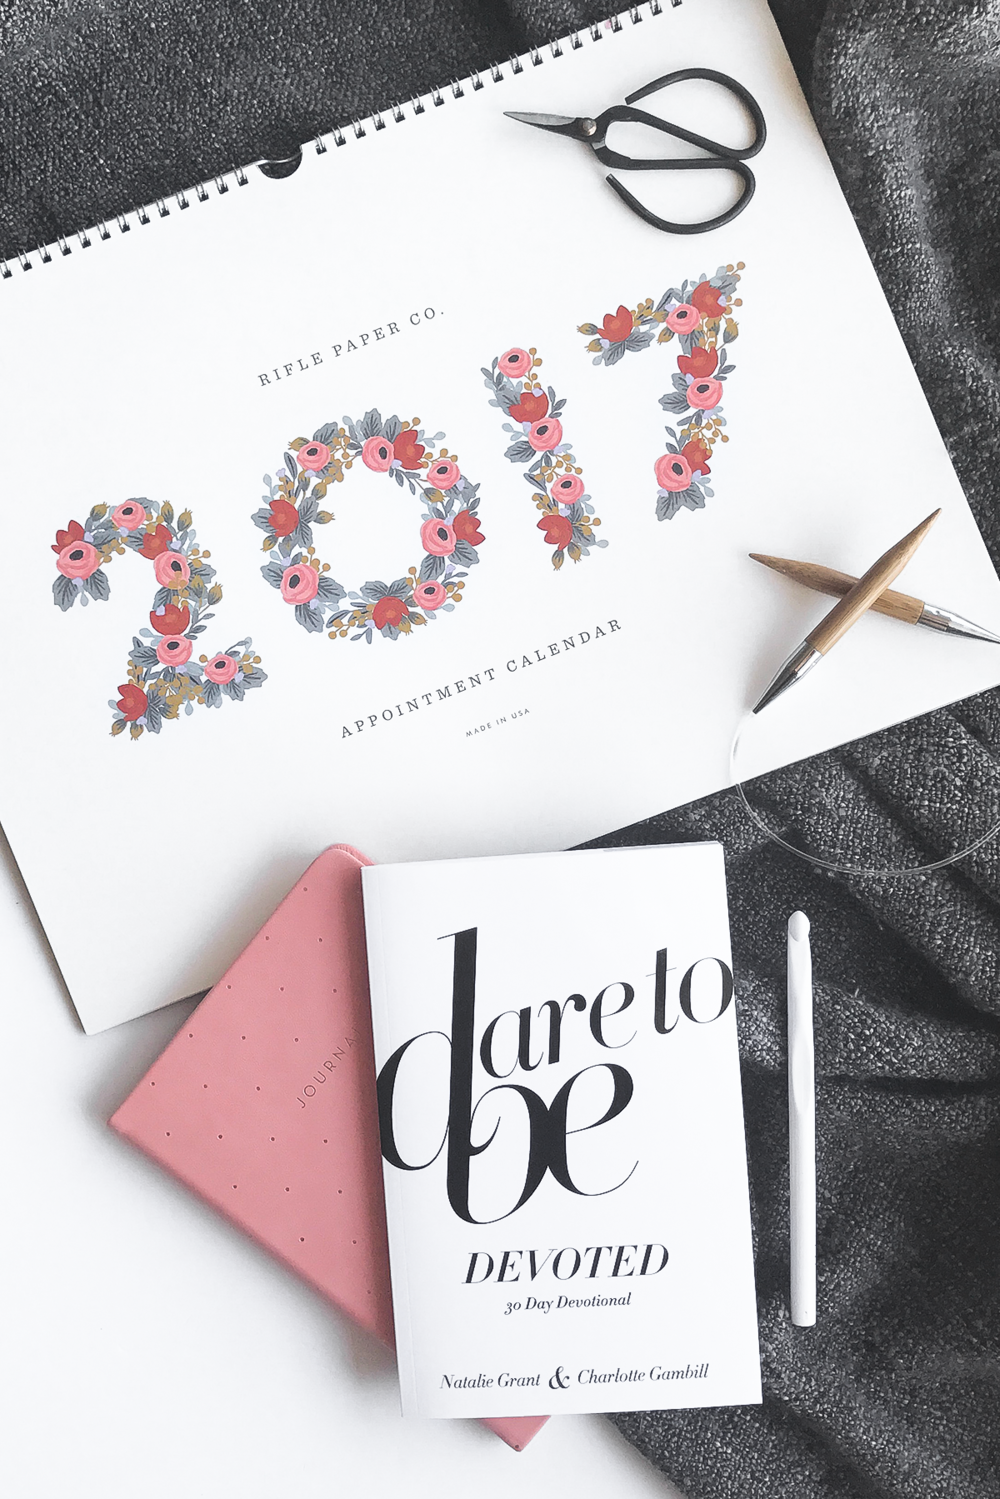 15 Things To Do To Prep For The New Year | A Girl, Obsessed